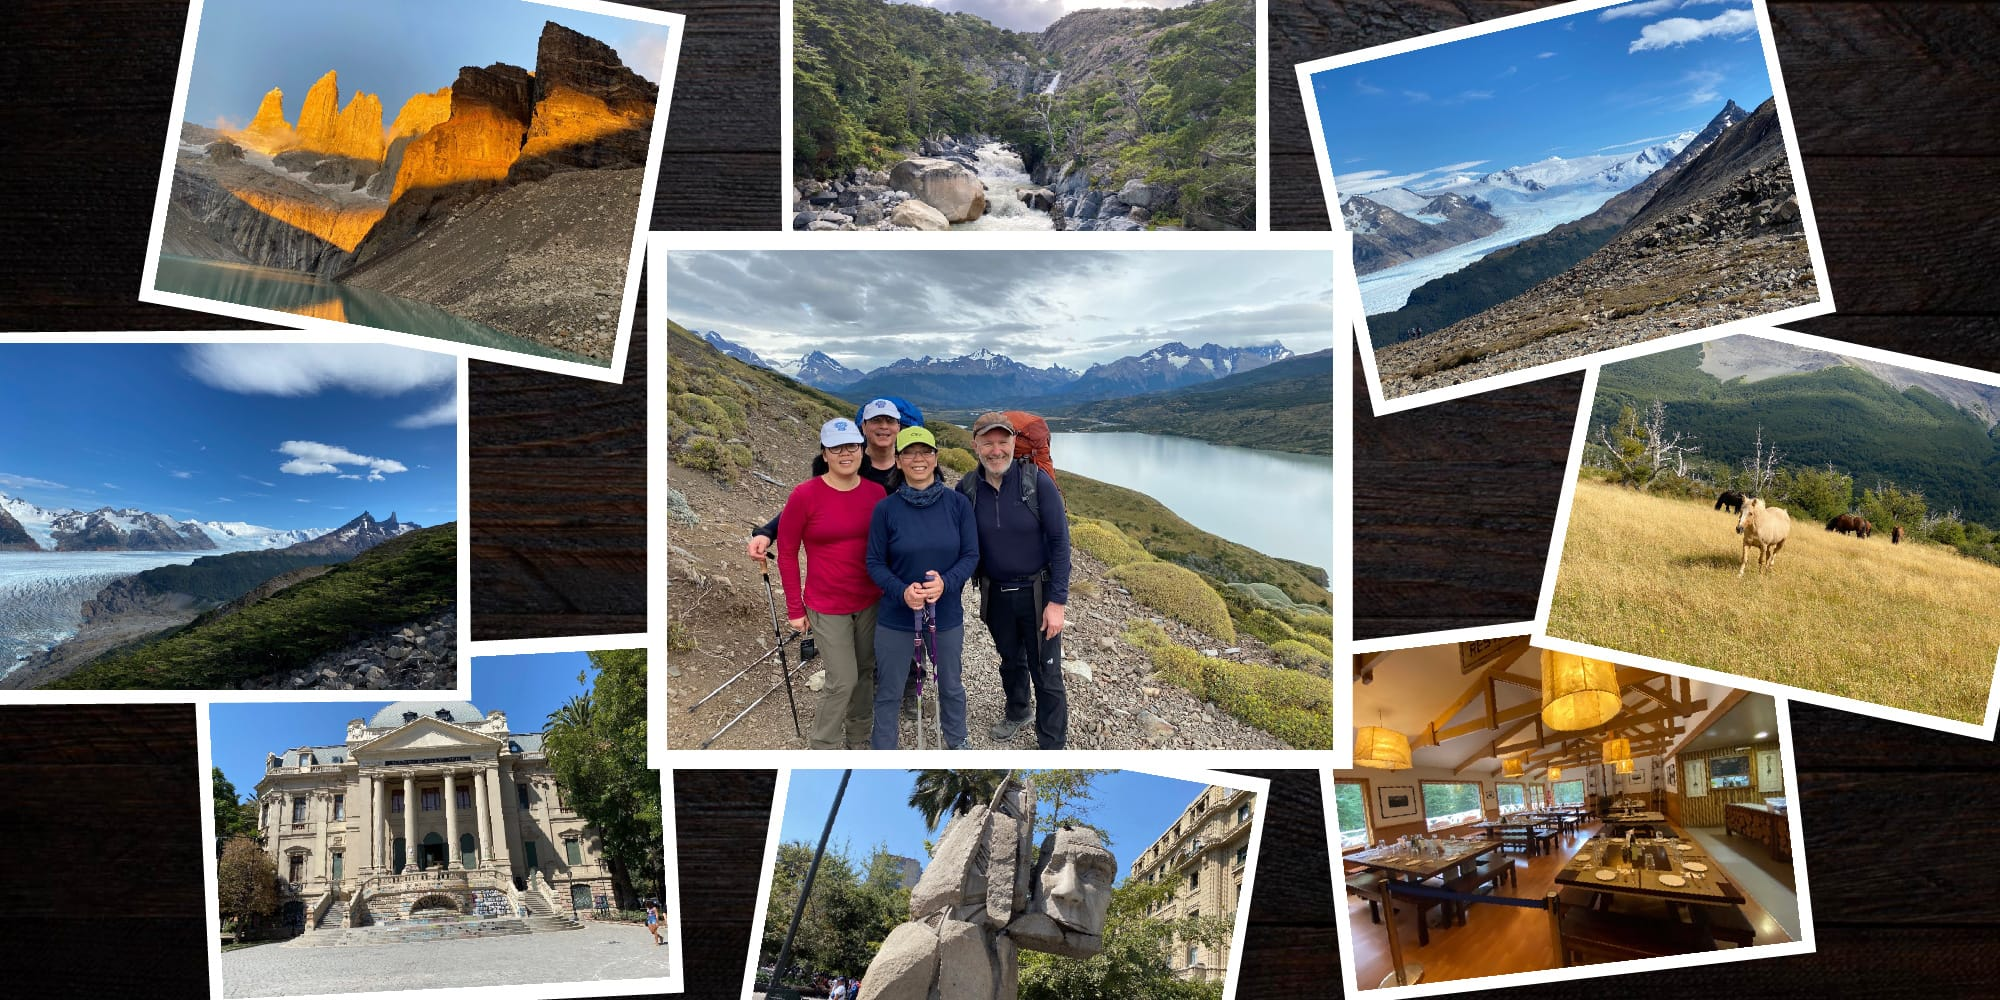 An amazing adventure in Patagonia